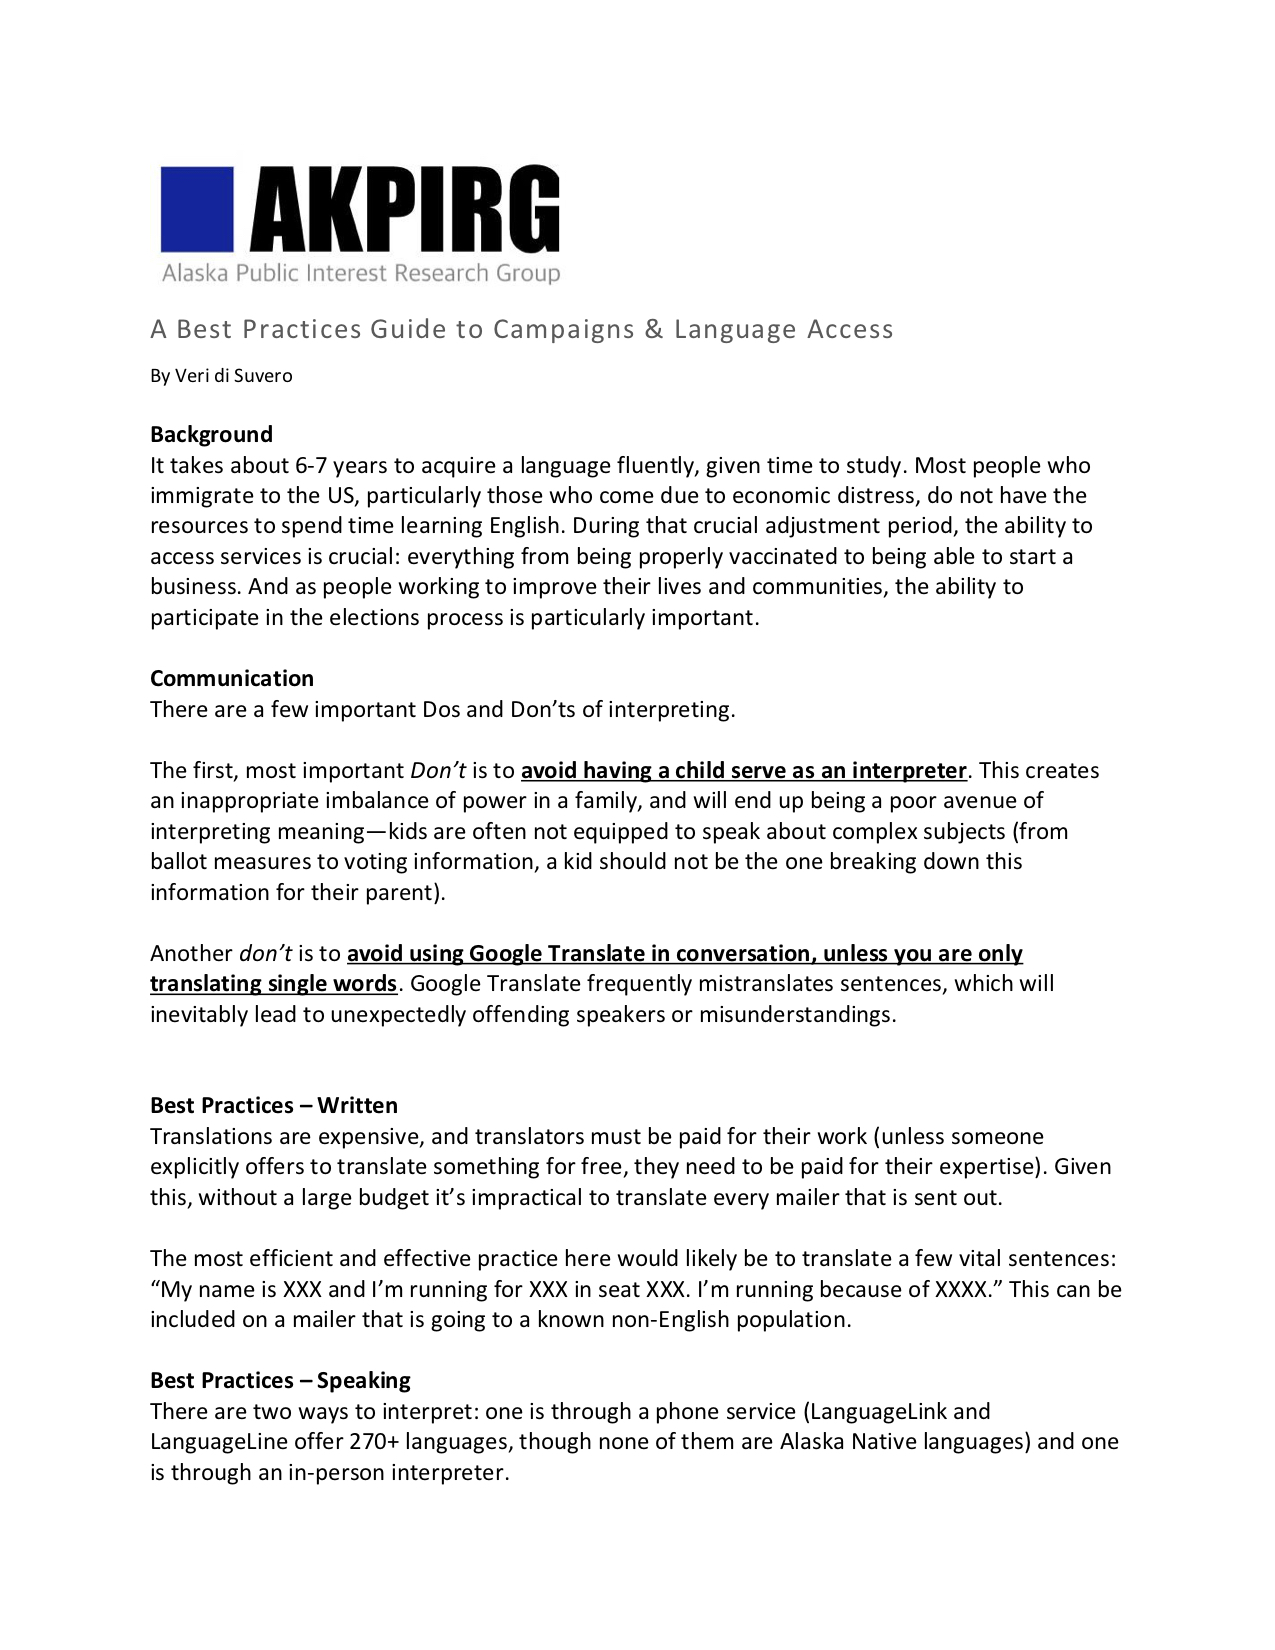 AkPIRG_Language Access_Best Practices_p1.jpg